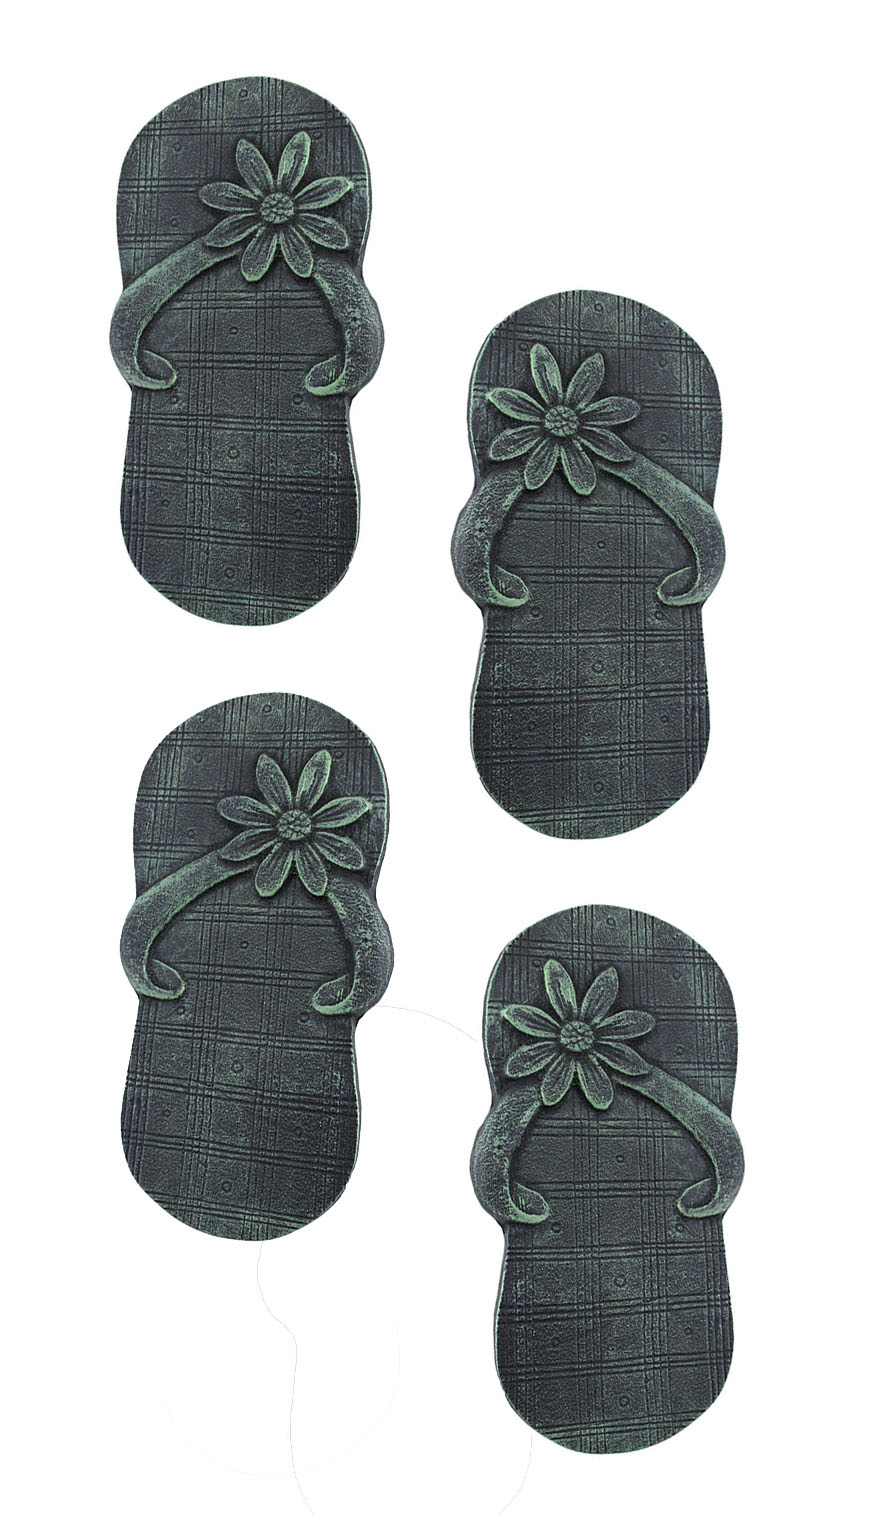 2 Pairs of Cast Iron Flip Flop Stepping Stones Verdigris Finish by Upper Deck, LTD